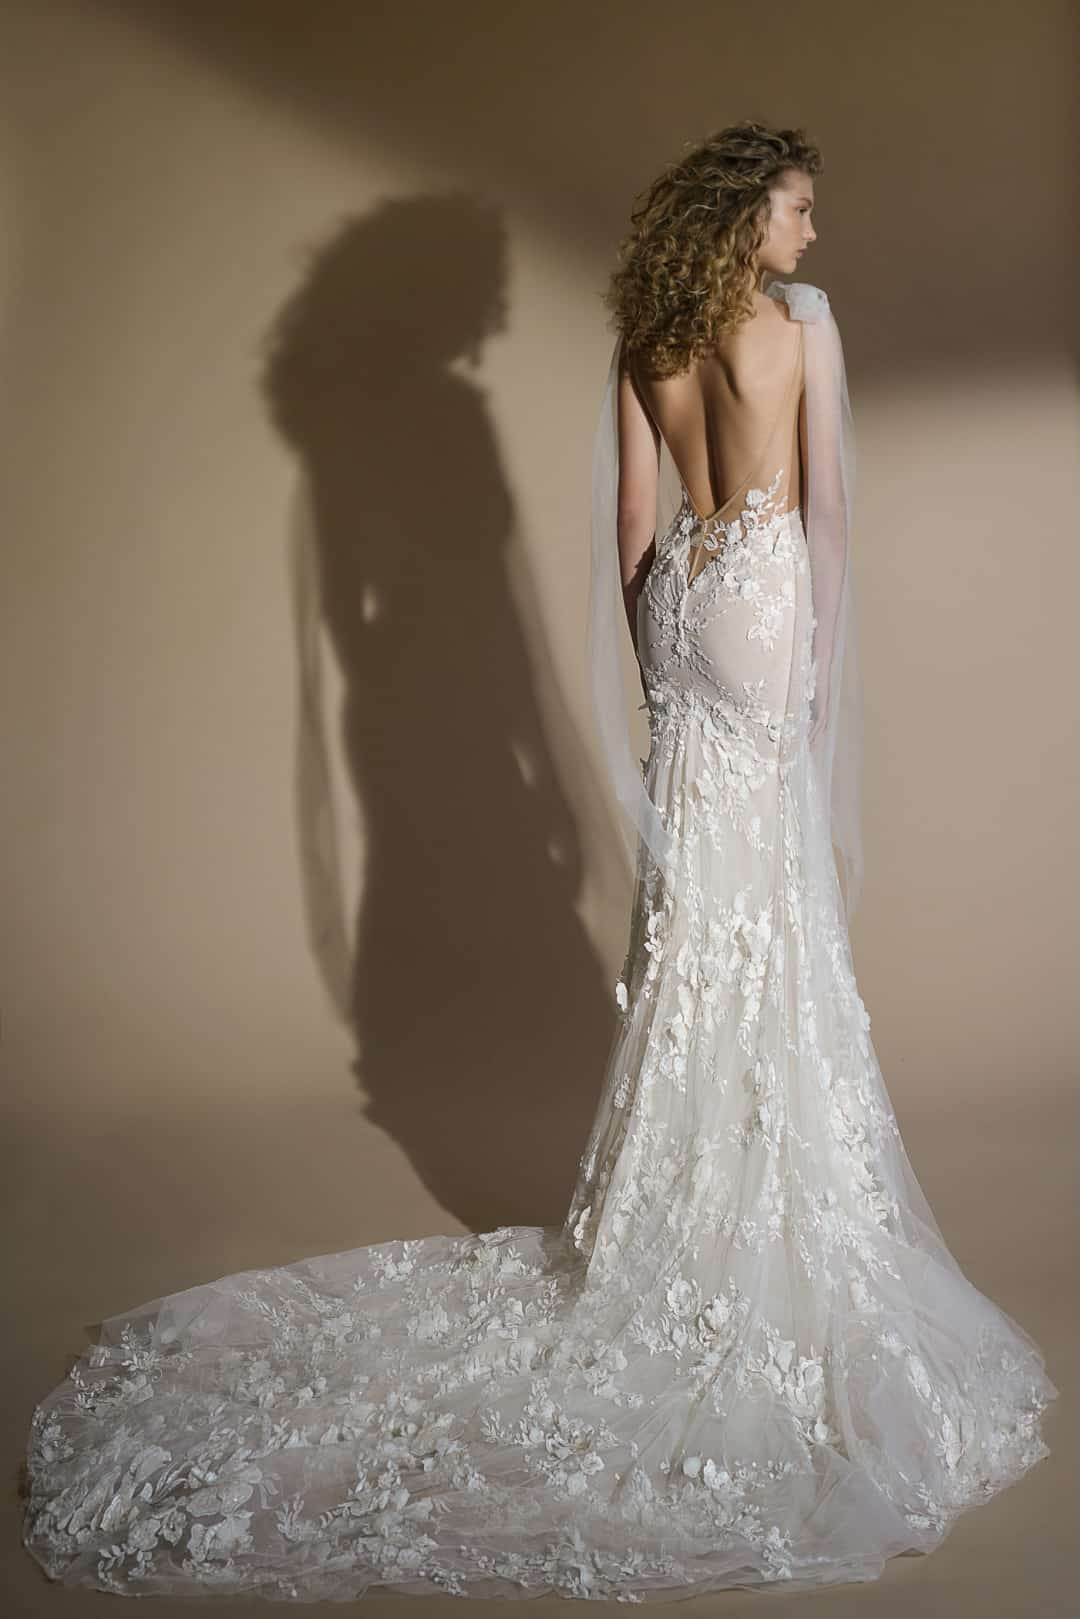 Haute Couture svadobne saty - G-104-F-B2